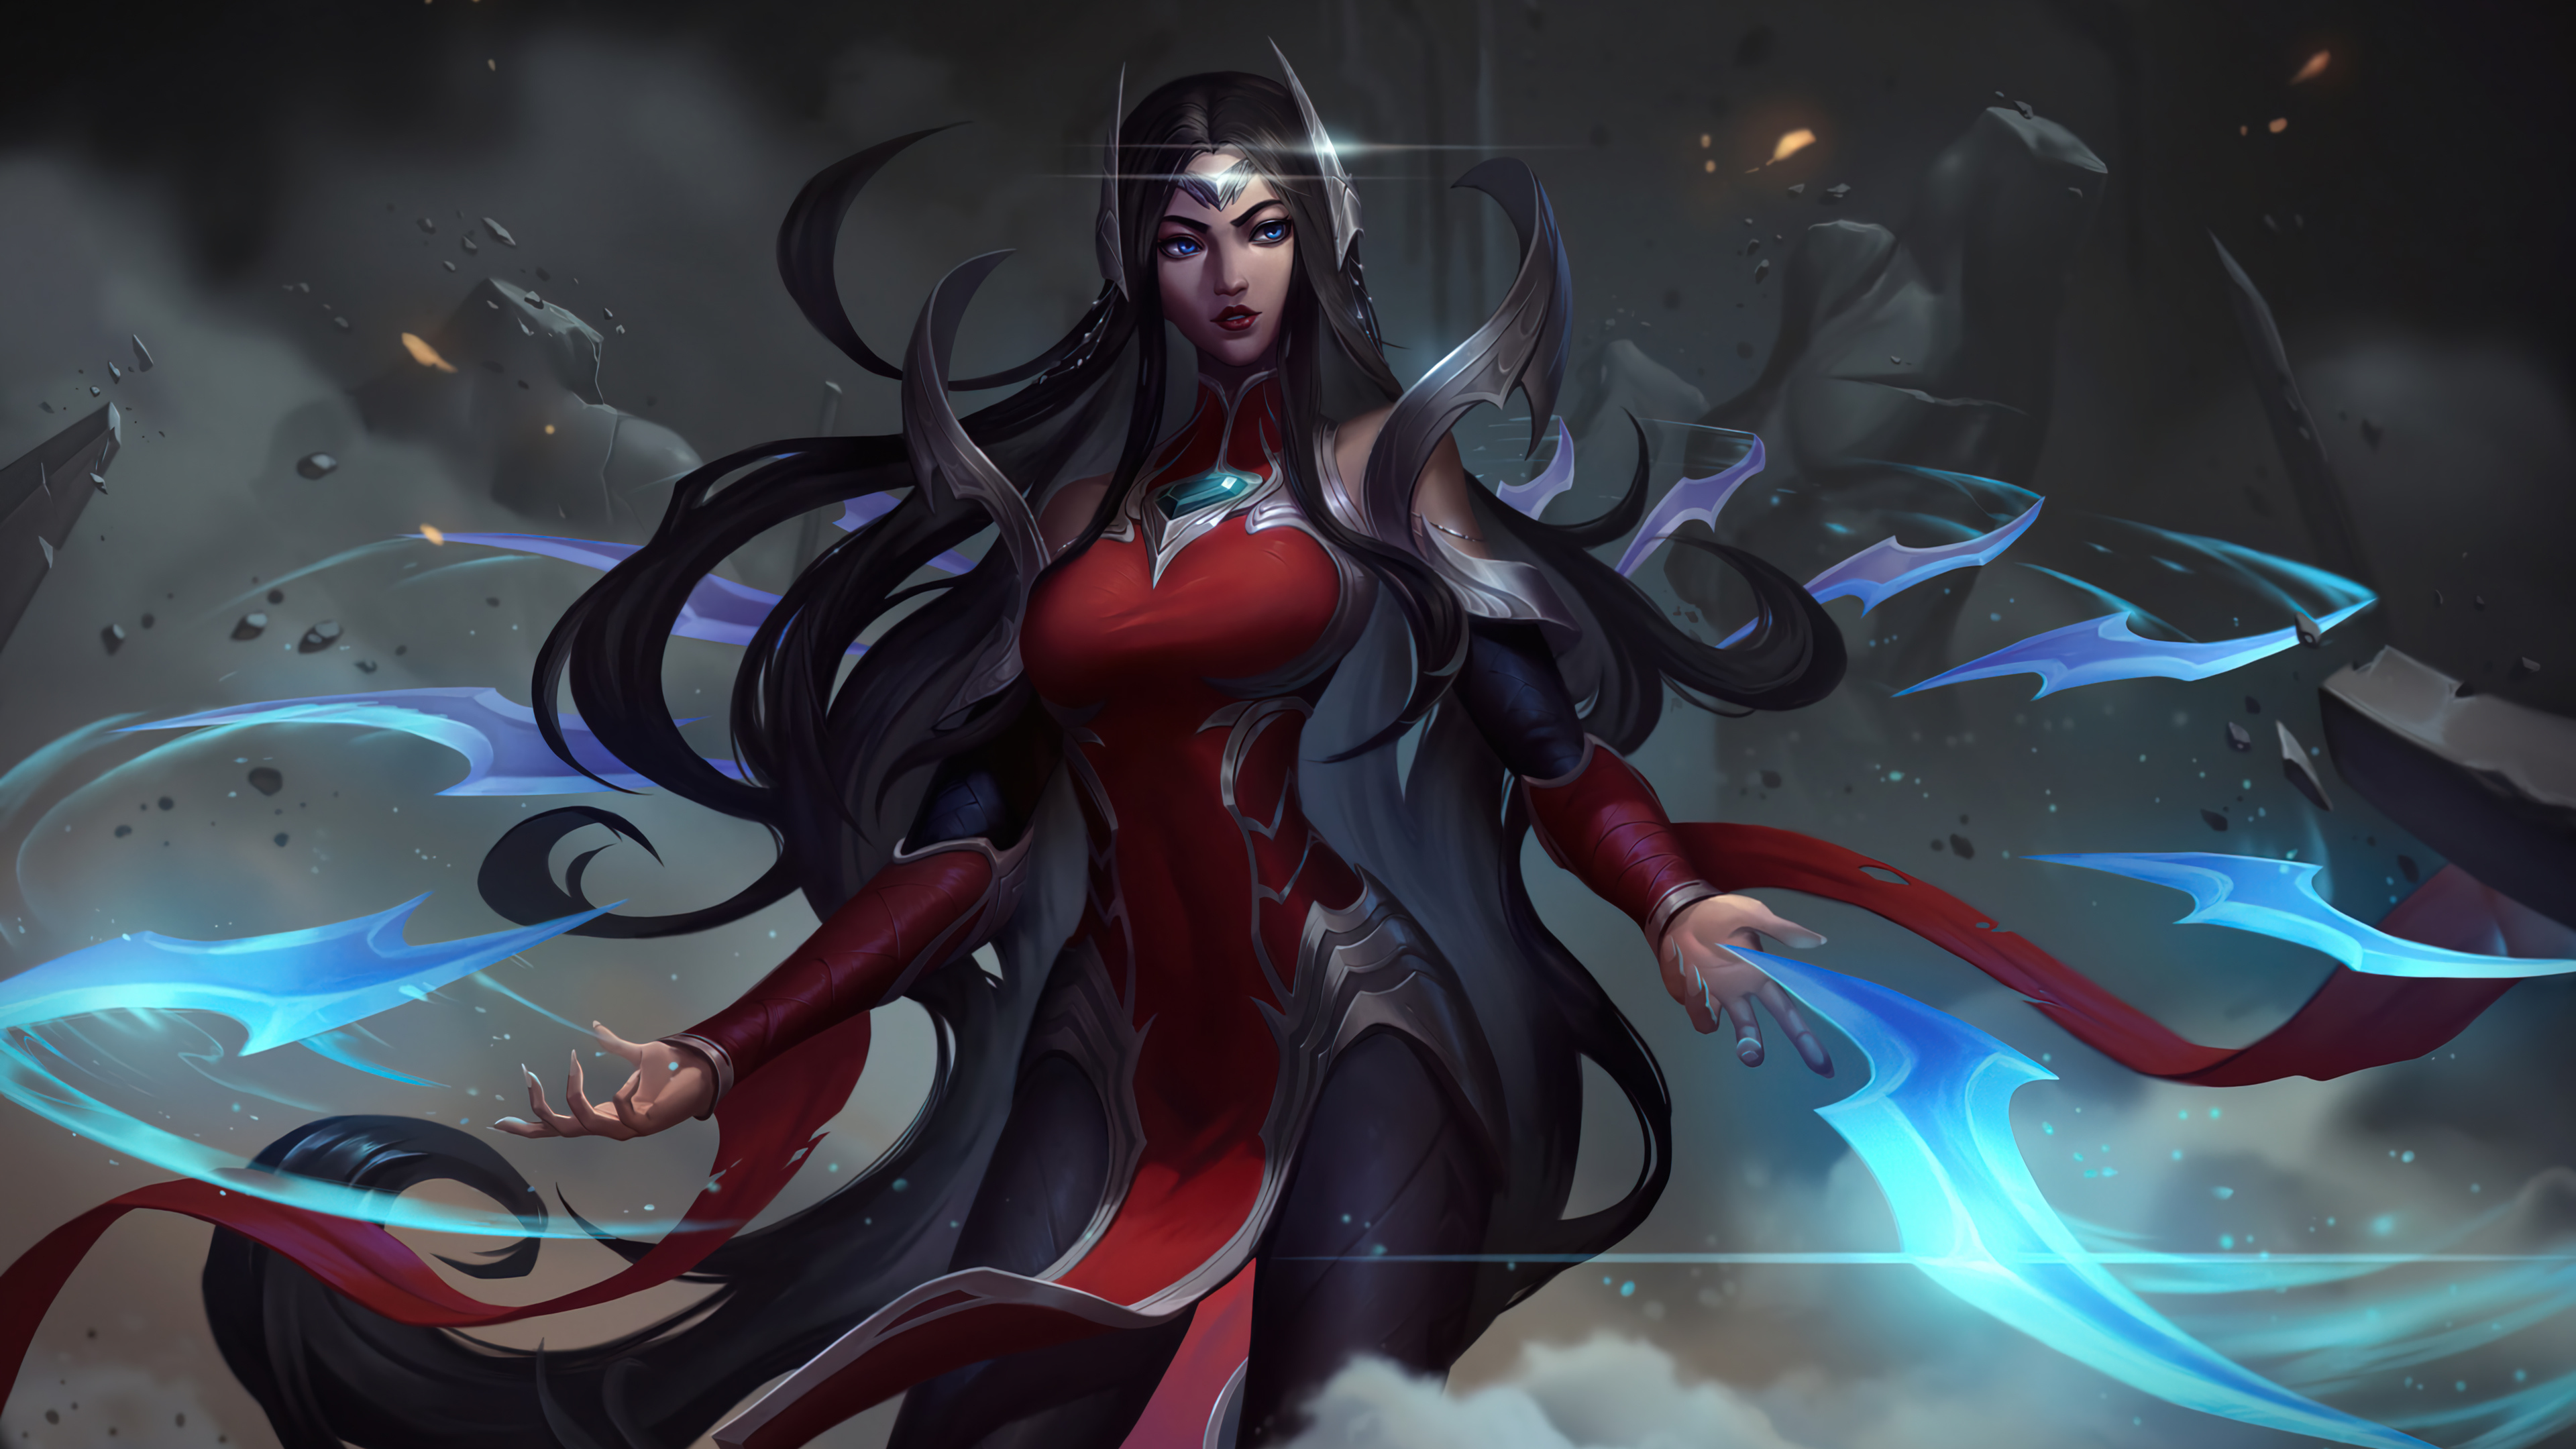 Fondos de pantalla Irelia League of Legends Art